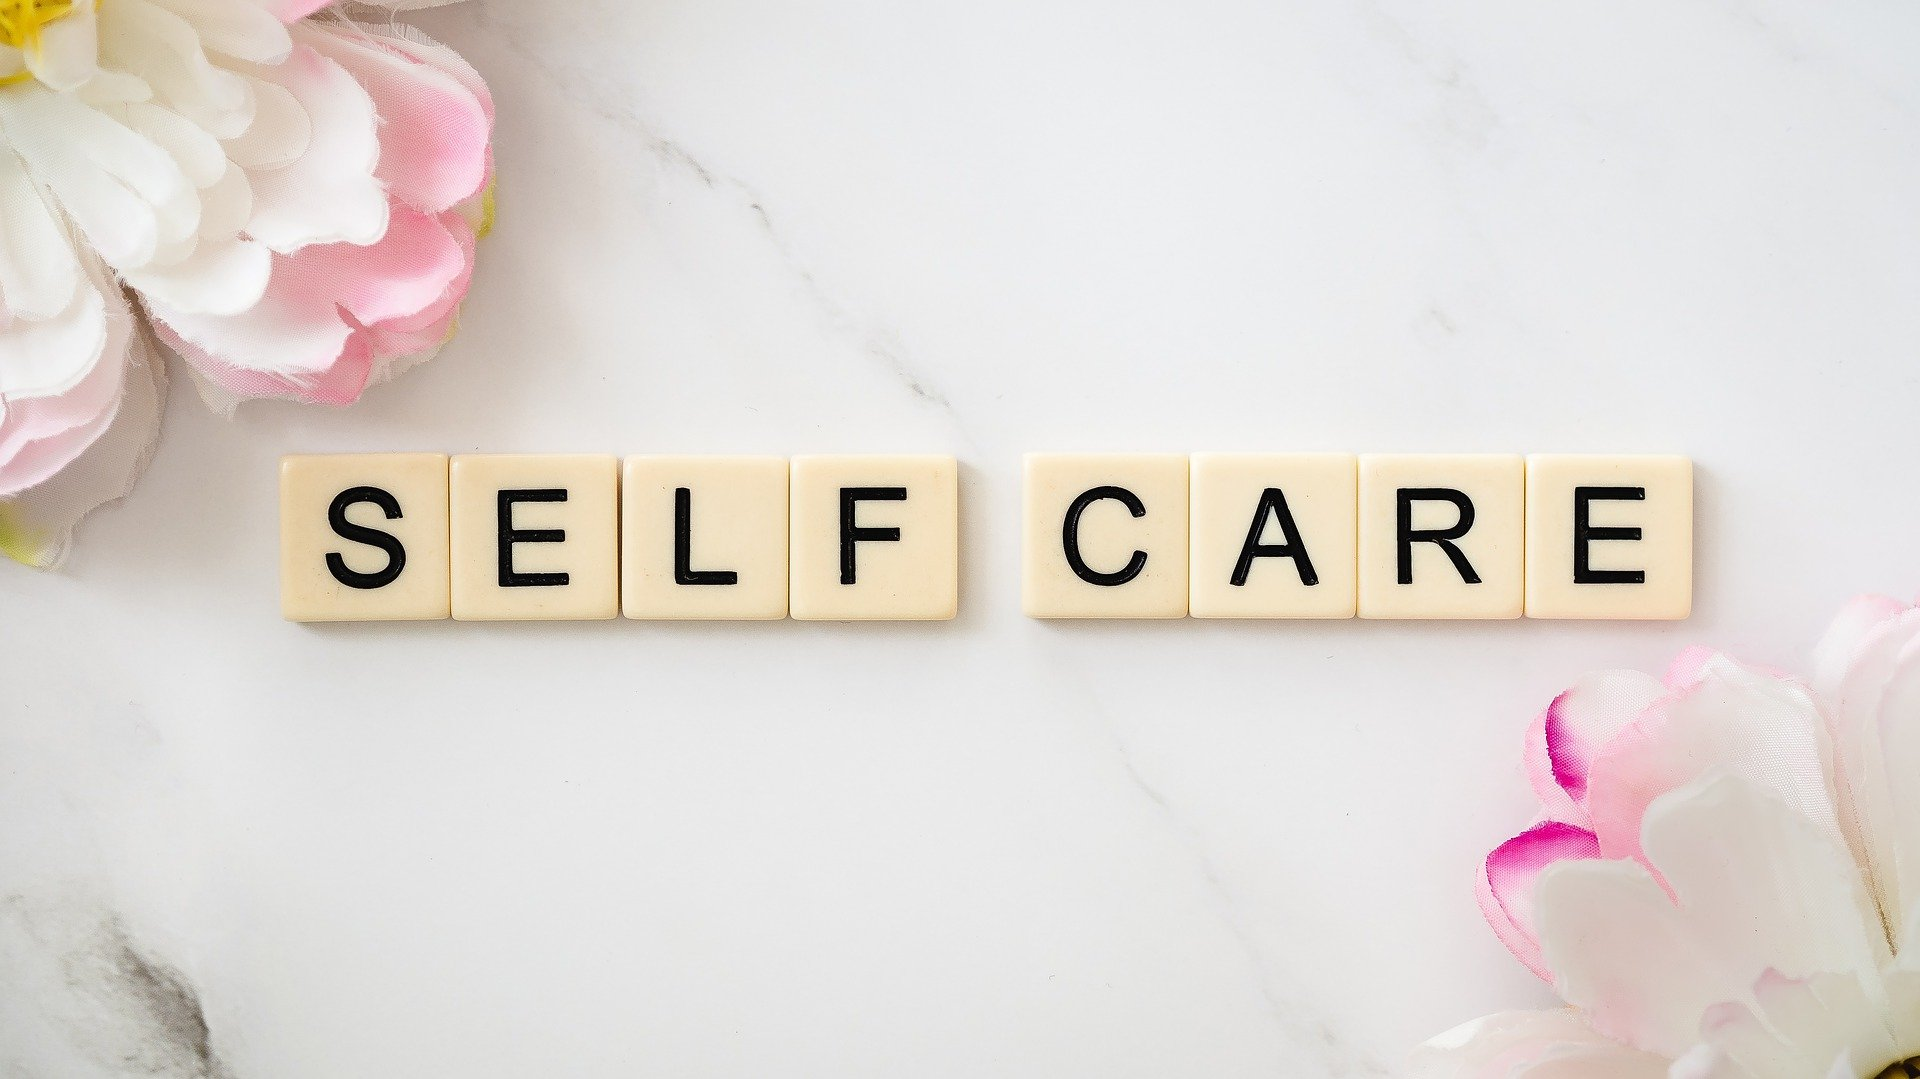 Self-Care and It's Importance On Our Well-Being